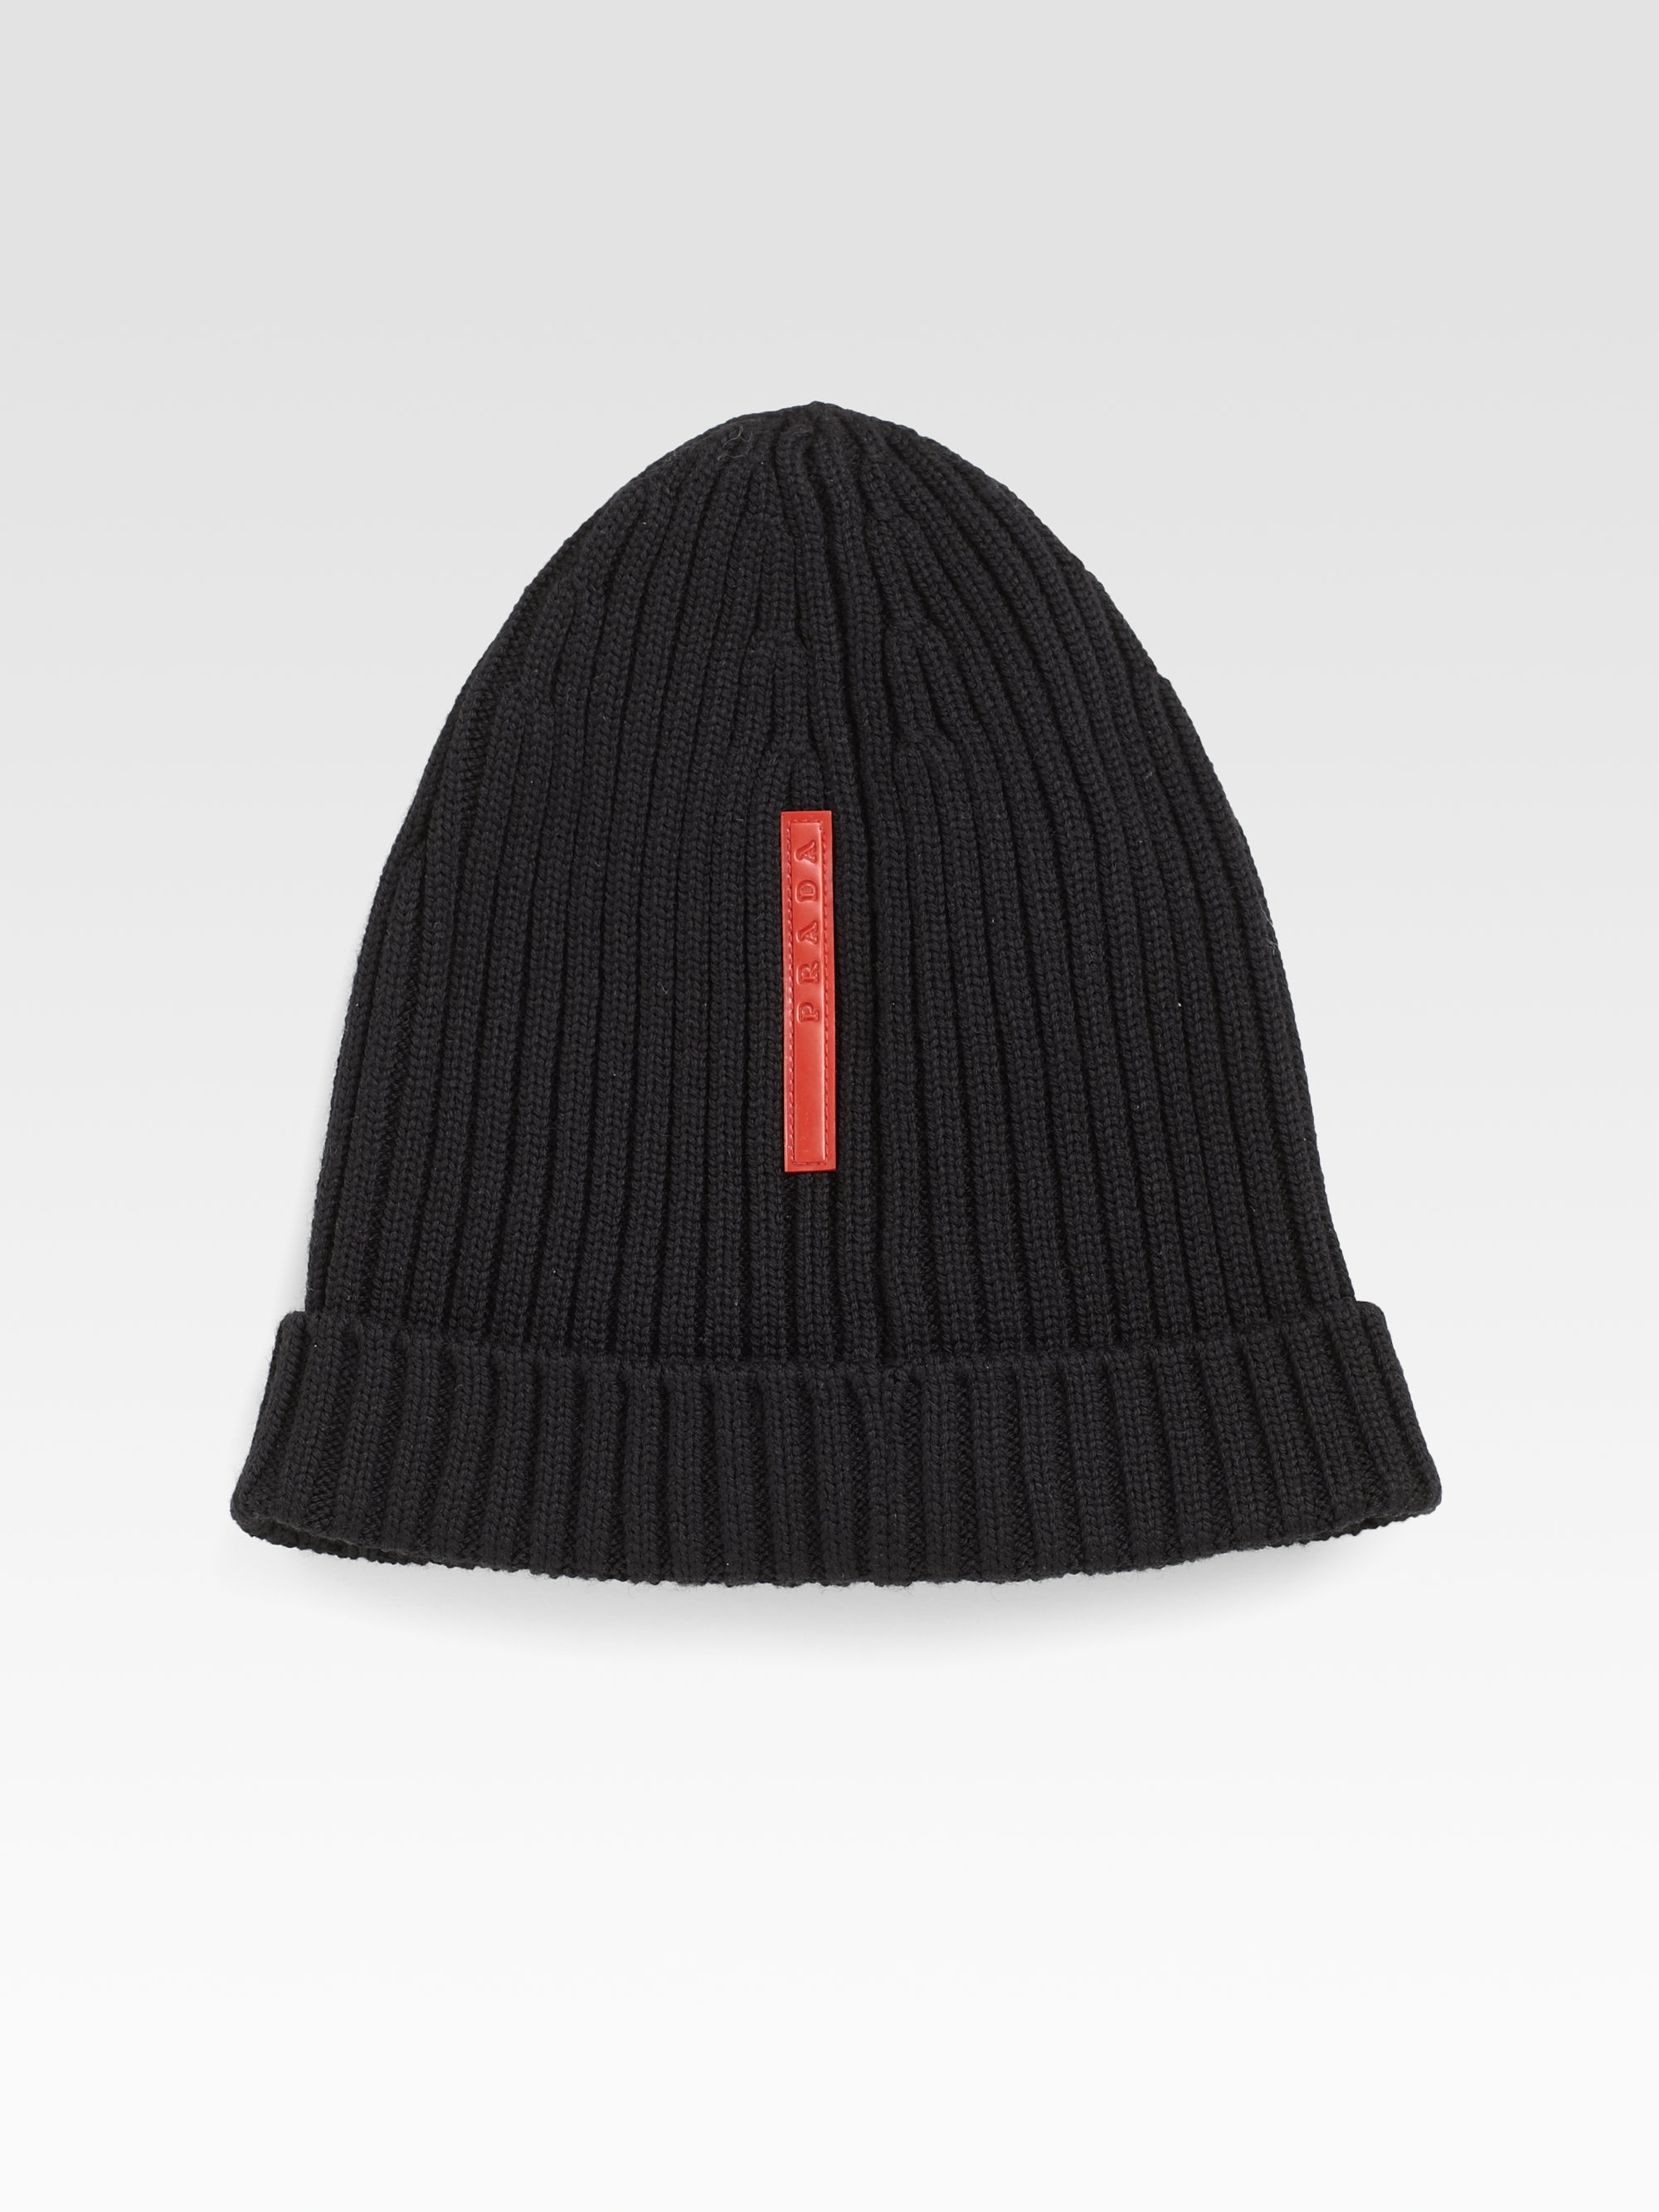 cc3af635cb3 Lyst - Prada Cappello Knit Hat in Black for Men